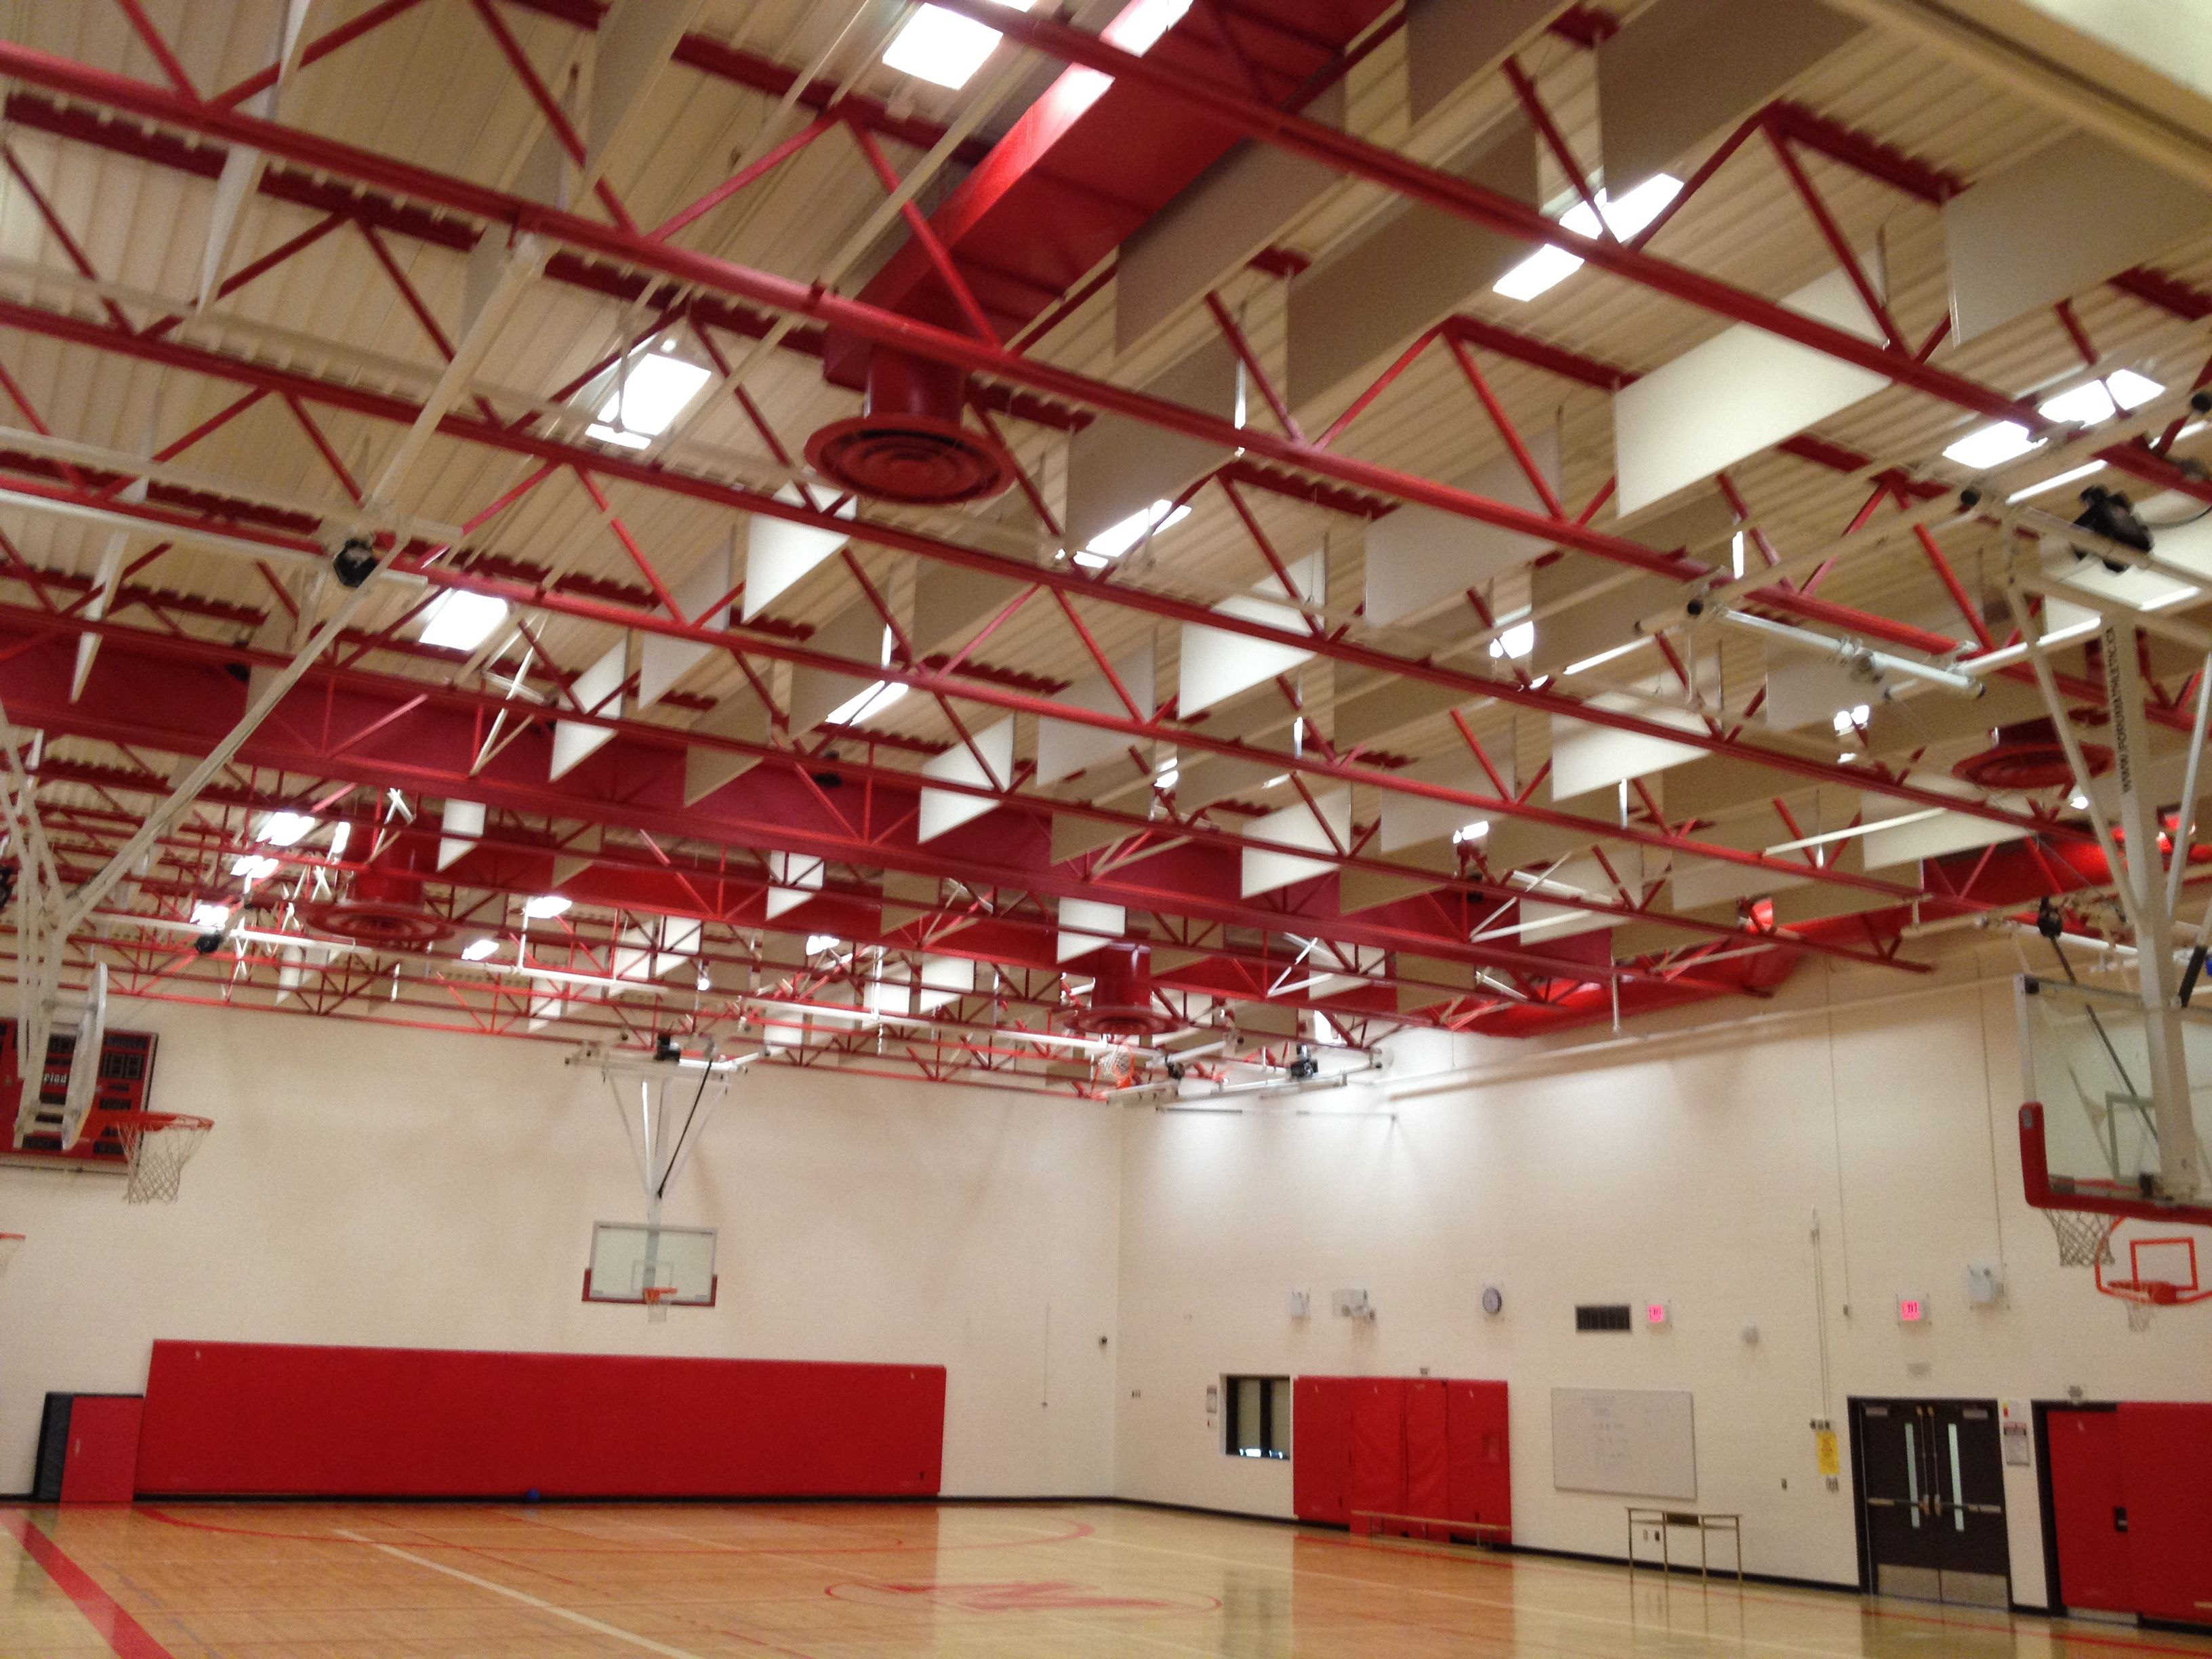 Suspended acoustic panels in a gymnasium ceiling